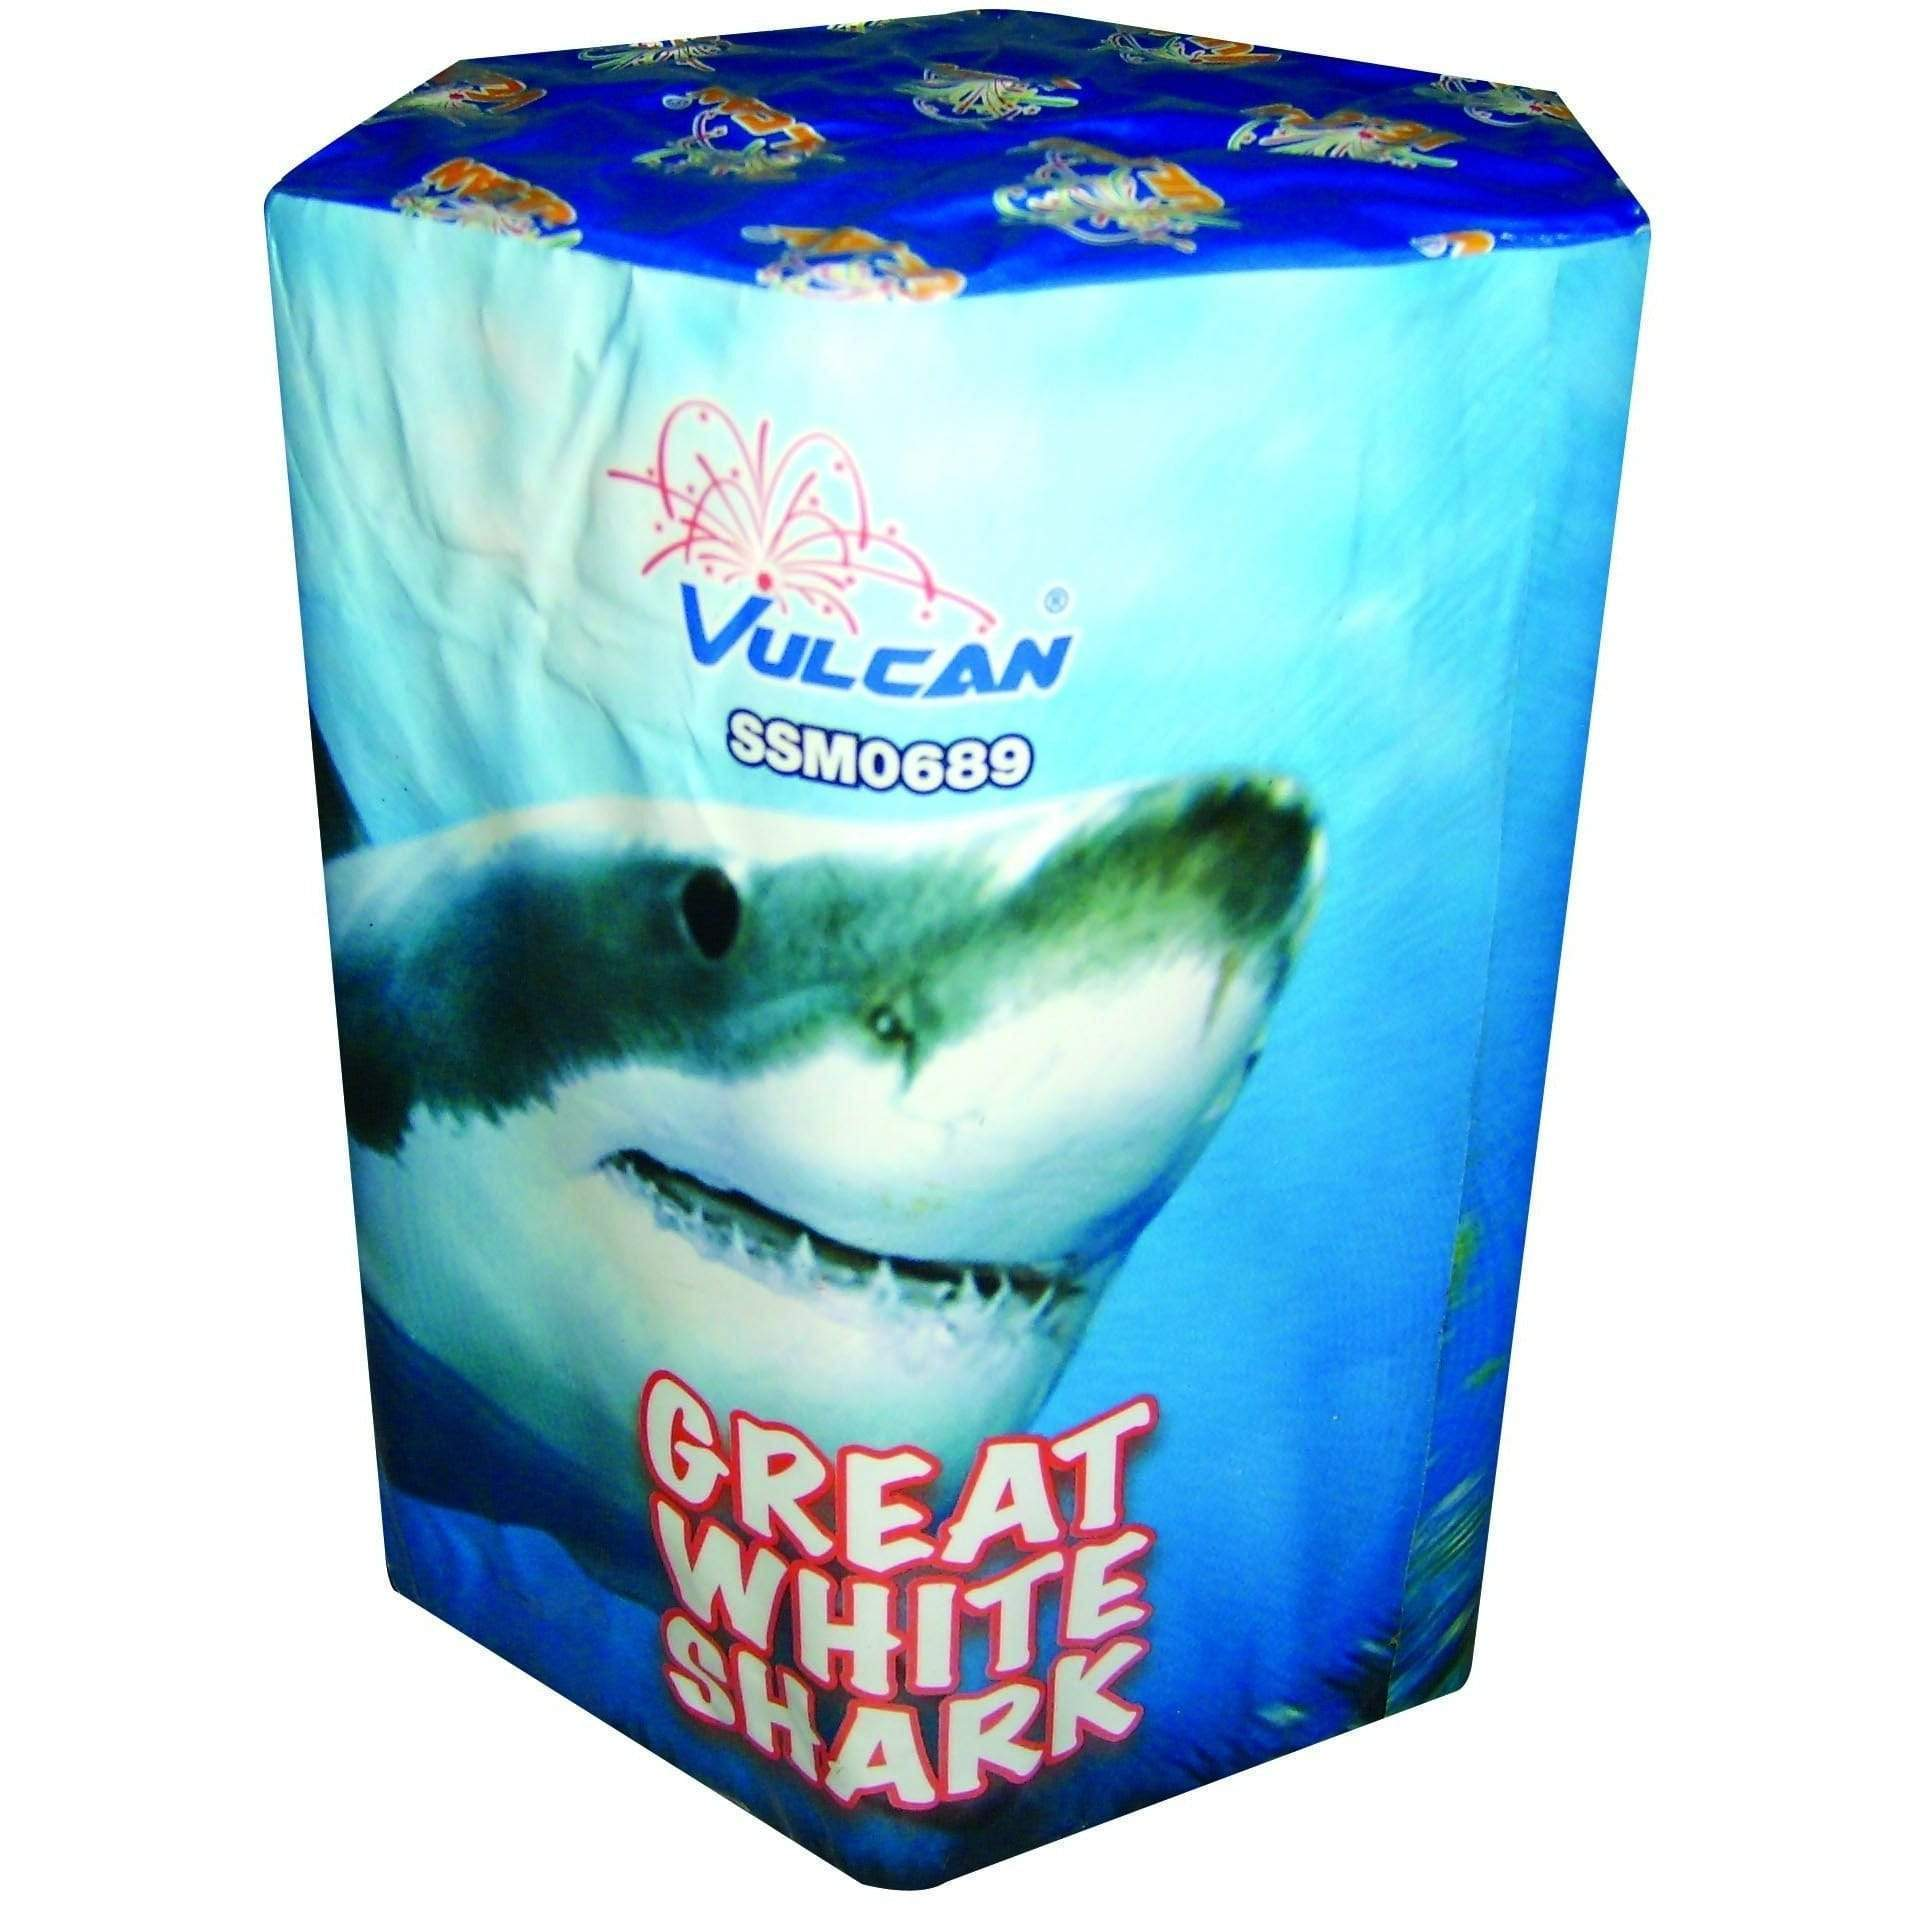 Vulcan Fireworks Cakes Great White Shark